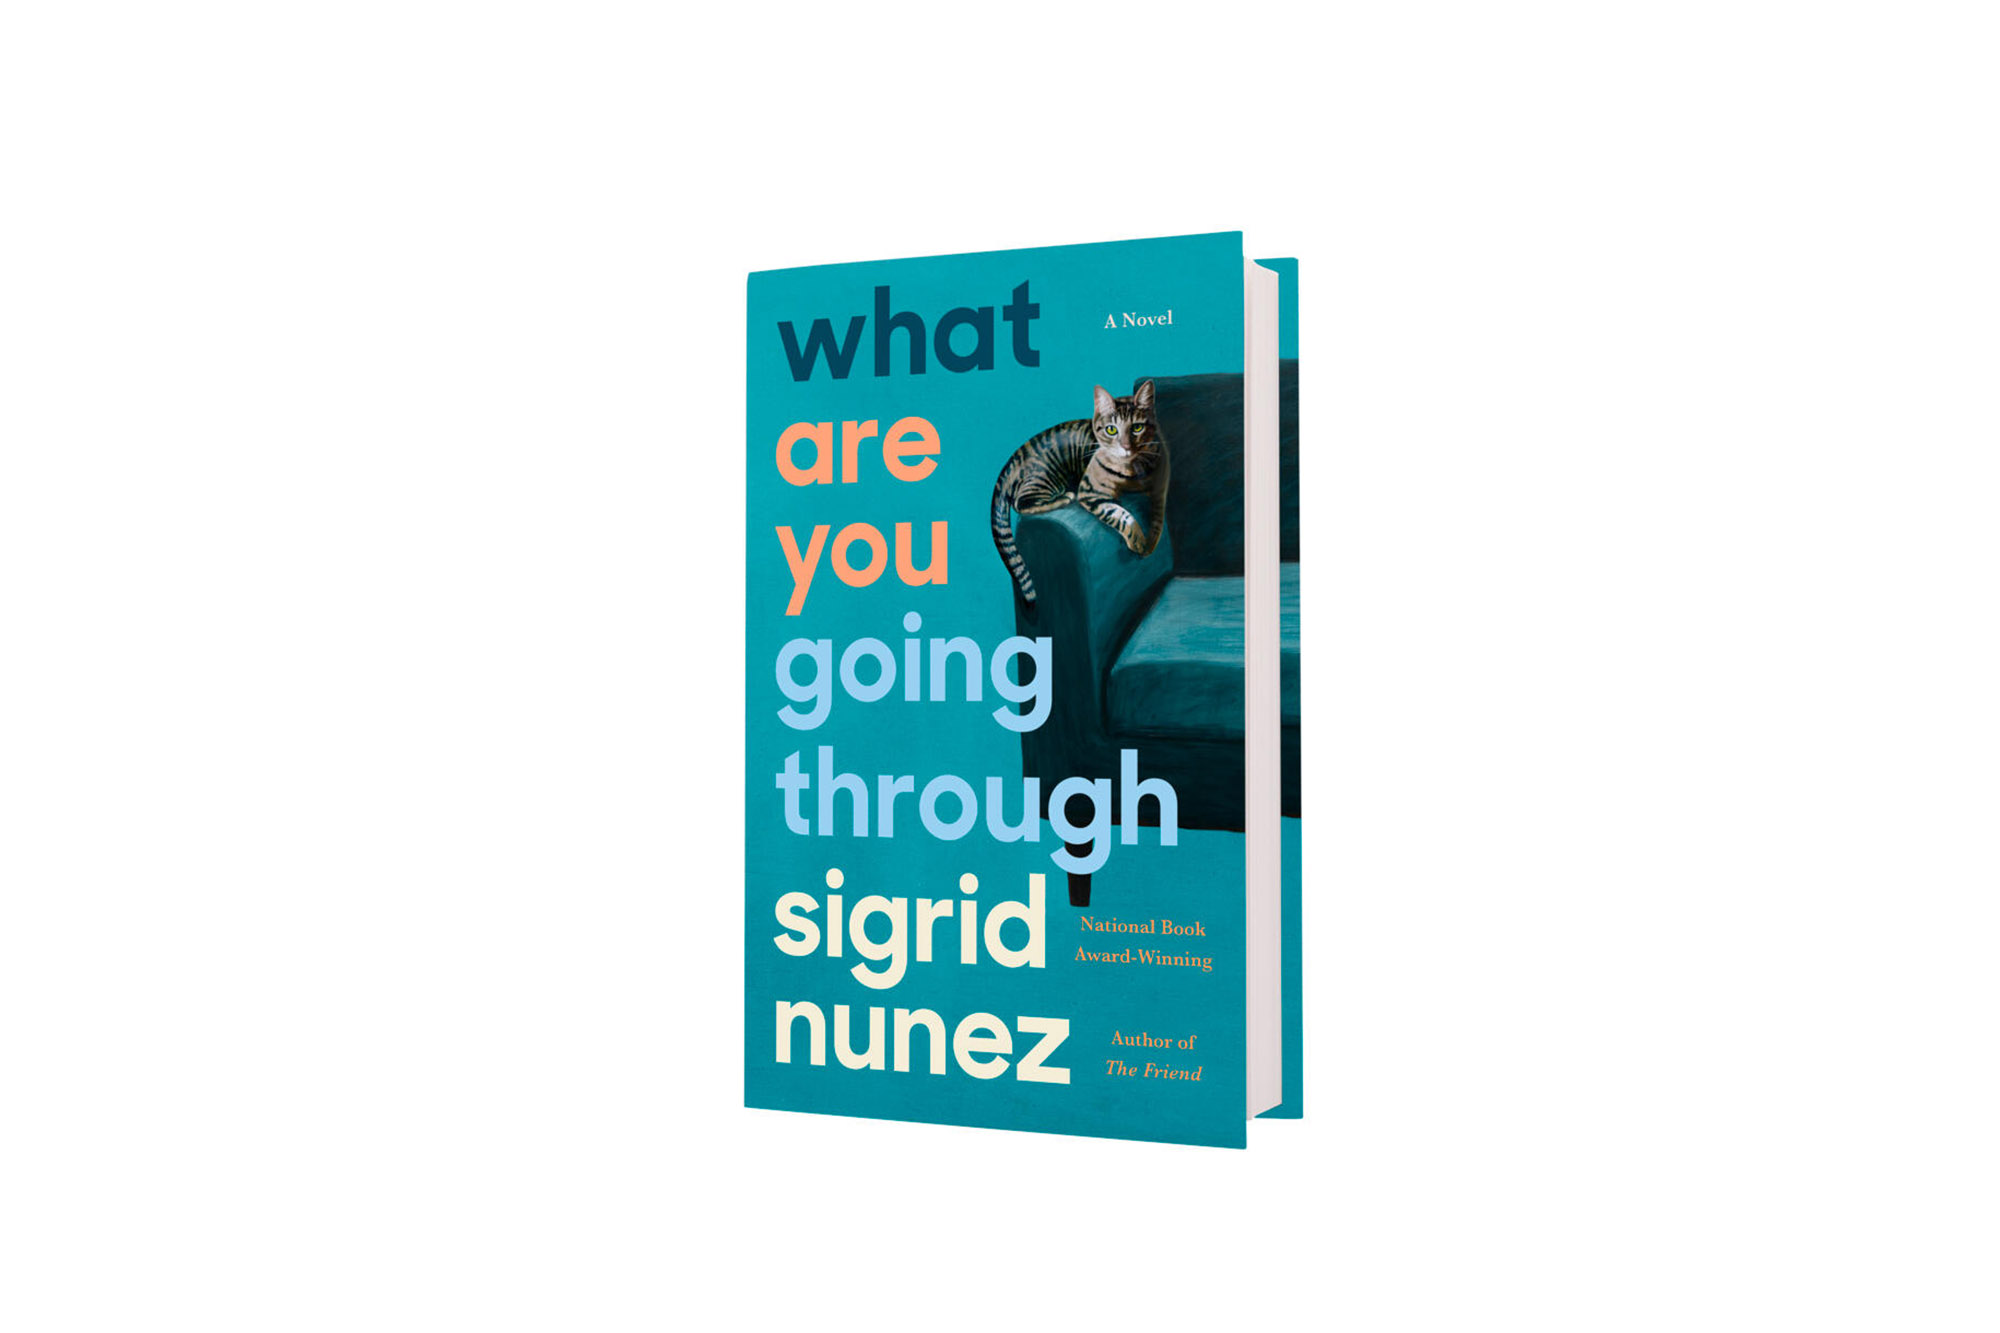 What Are You Going Through by Sigrid Nunez